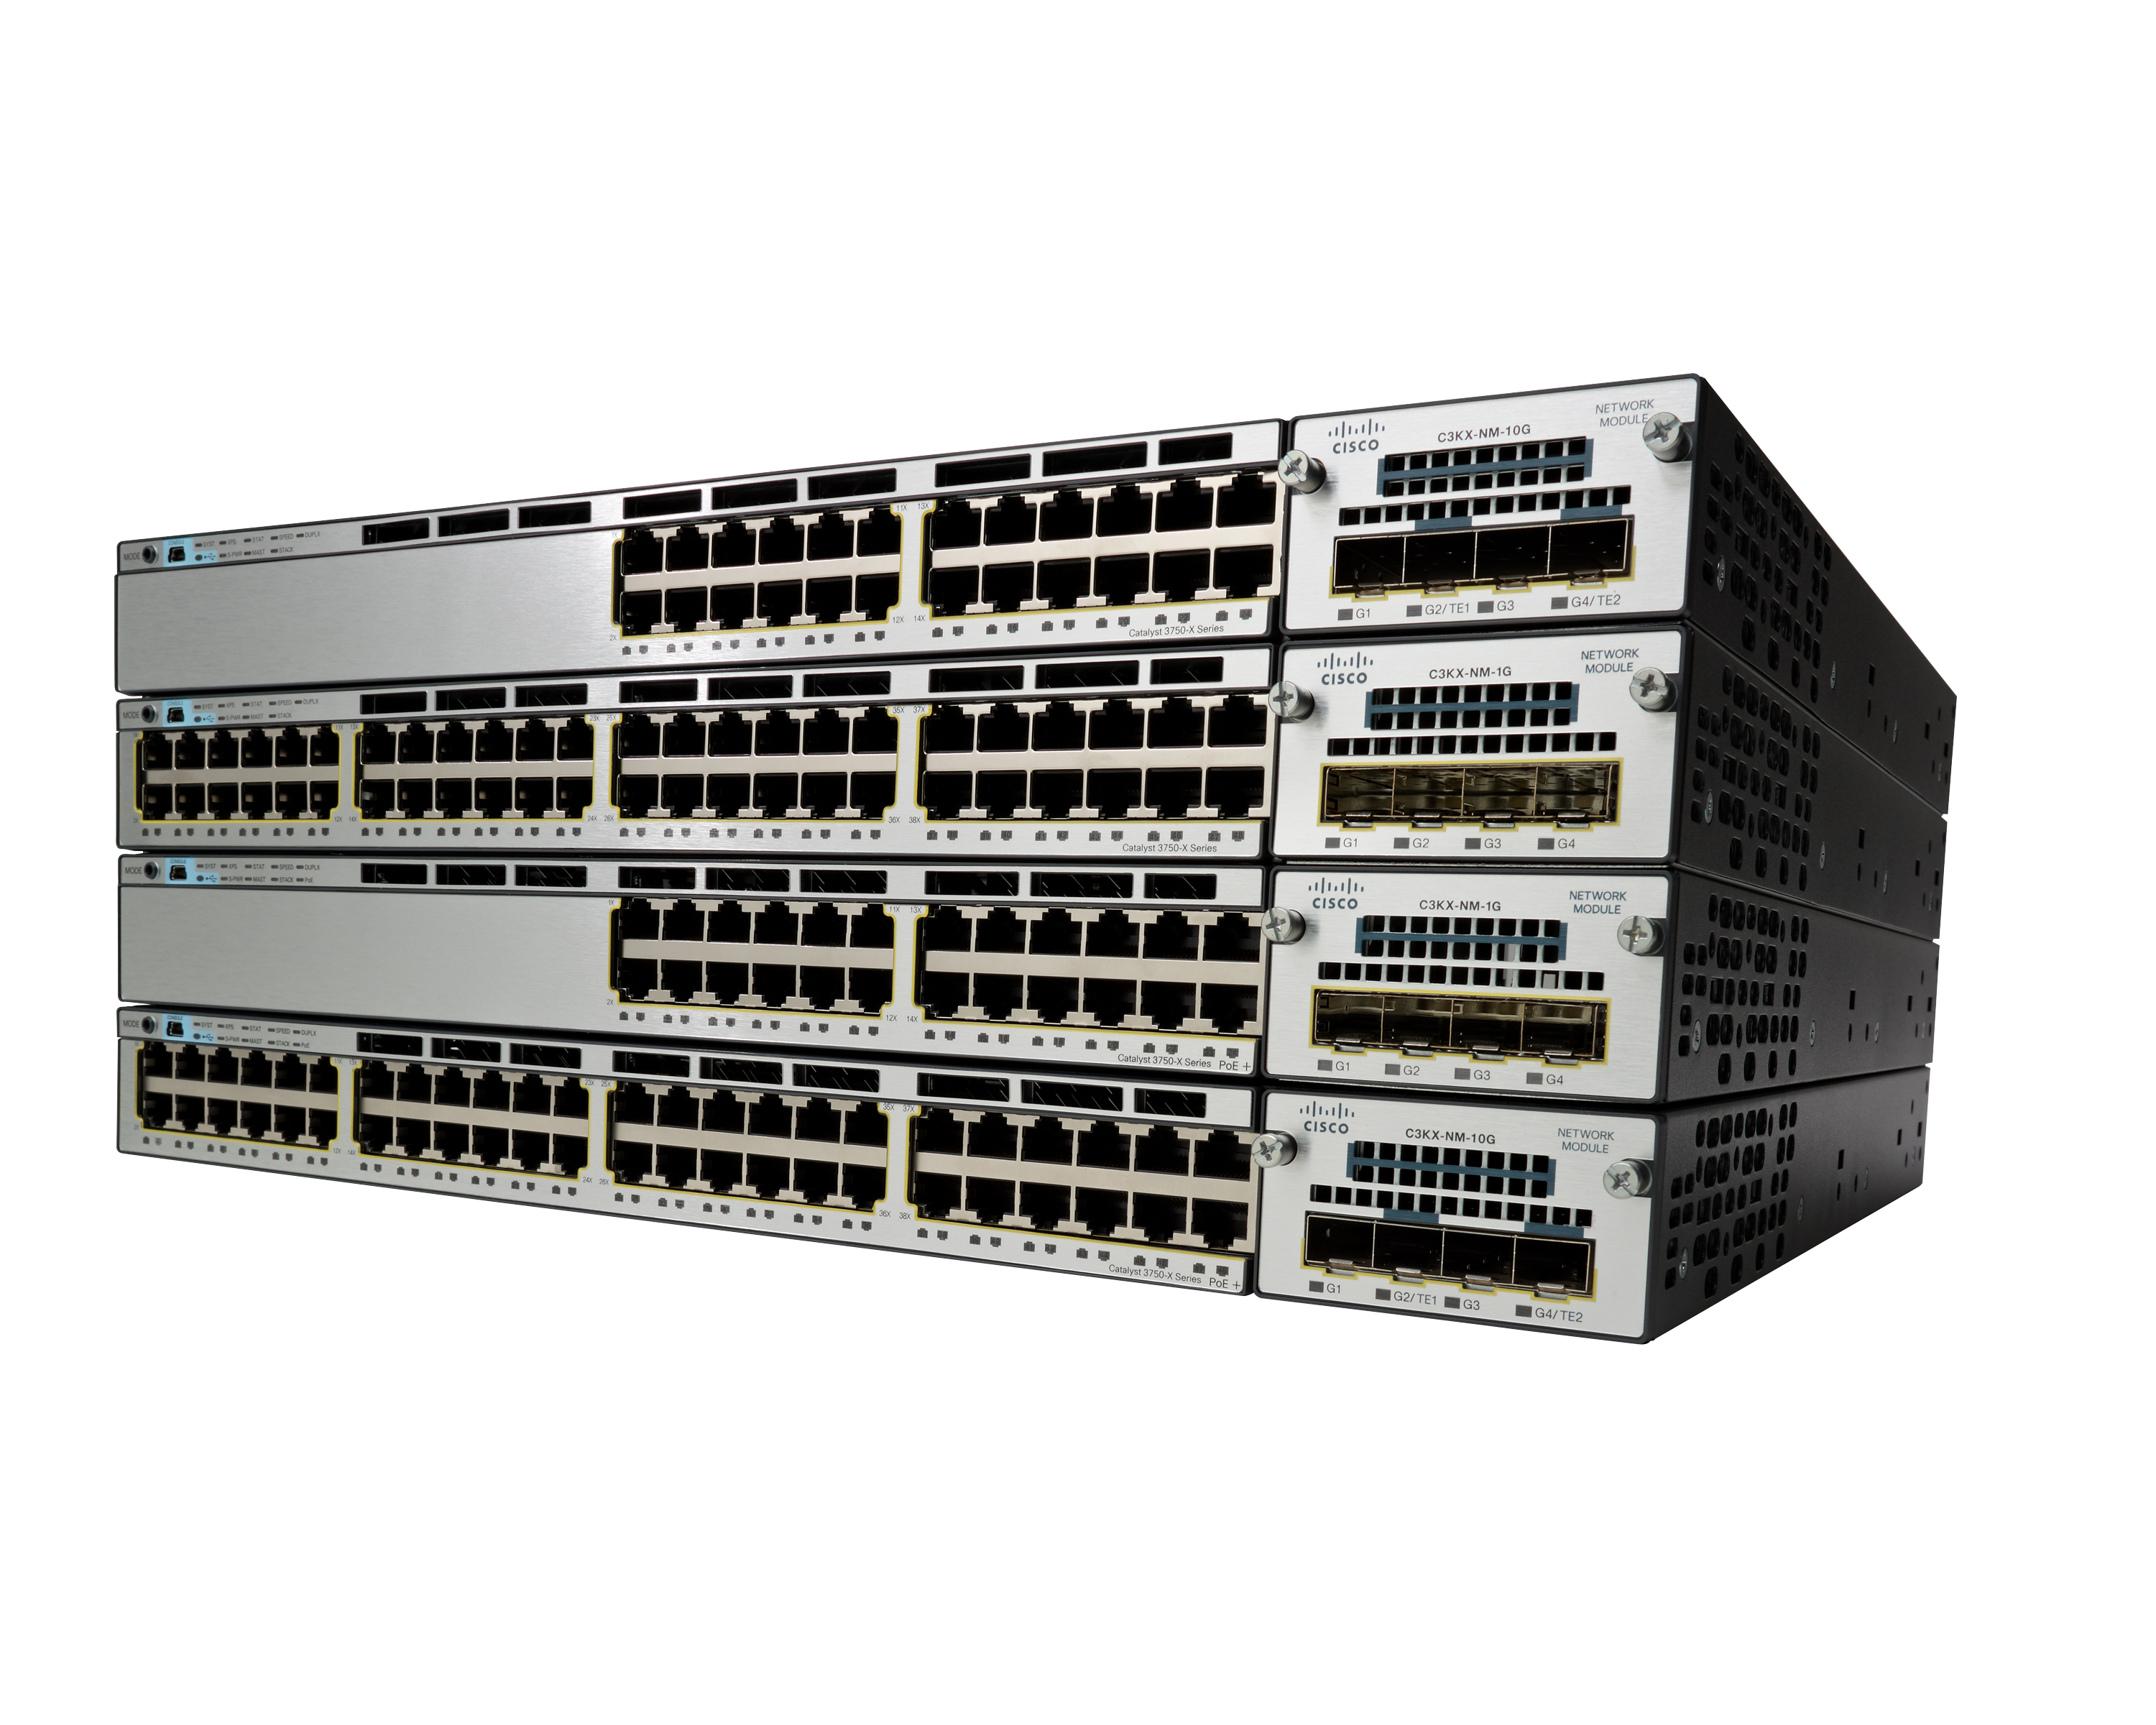 Cisco Catalyst 3750-X series